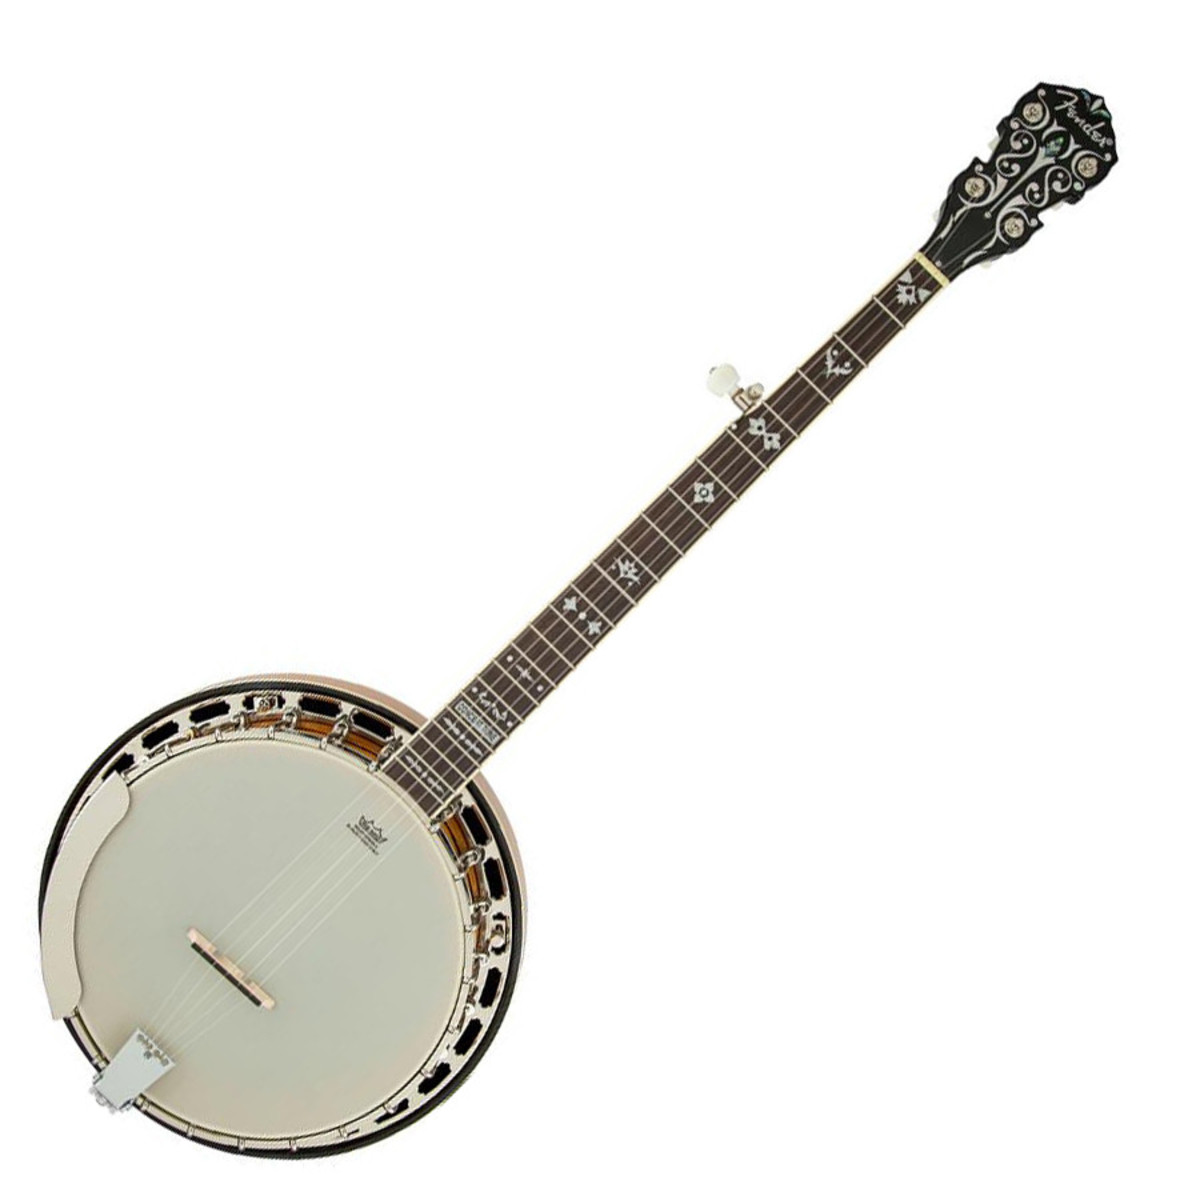 Fender Standard Concert Tone 55 Banjo At Gear4music.com